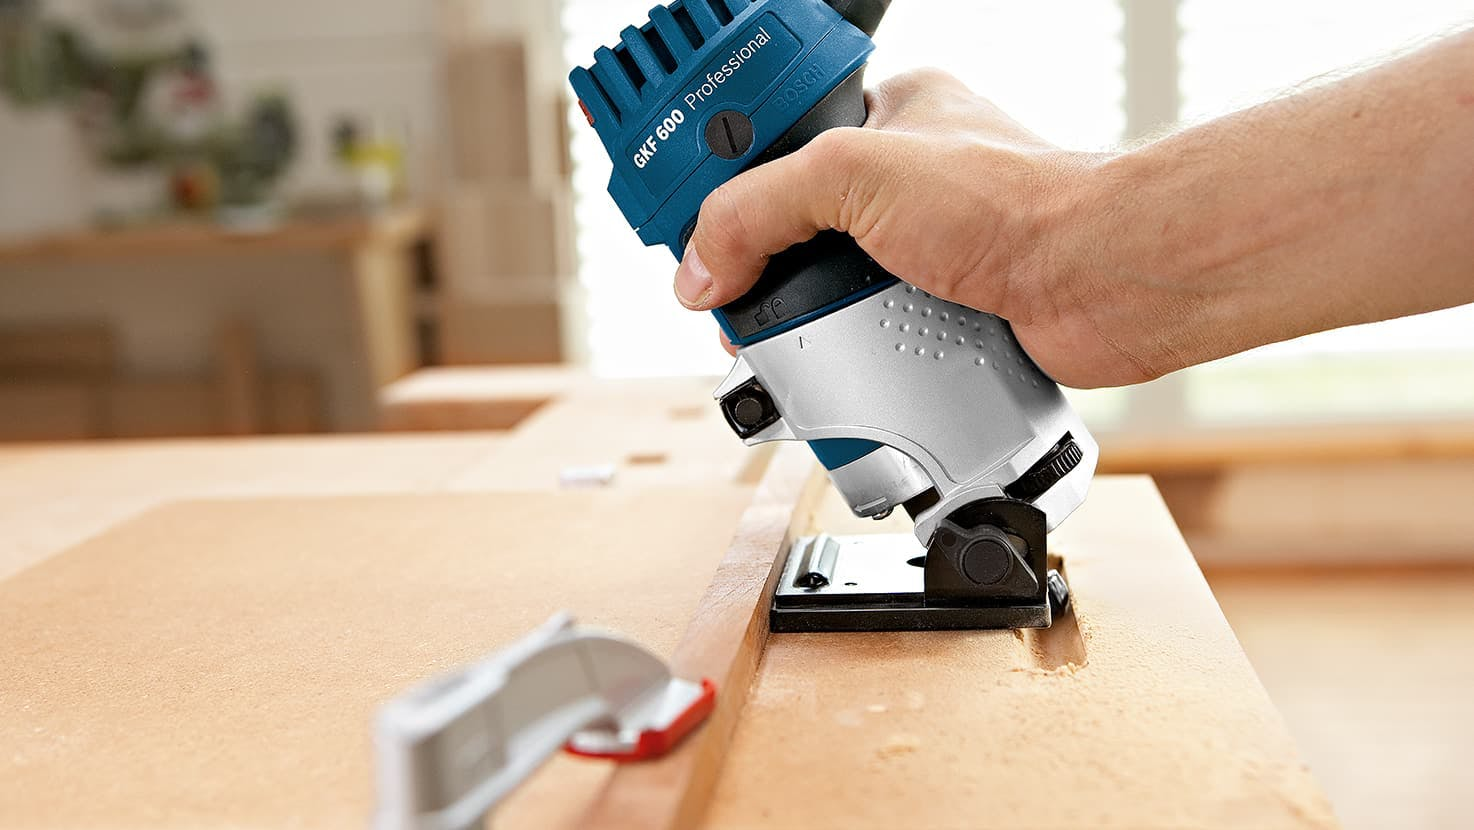 Bosch GKF 600 Palm Router Kit and TE 600 Plunge Base